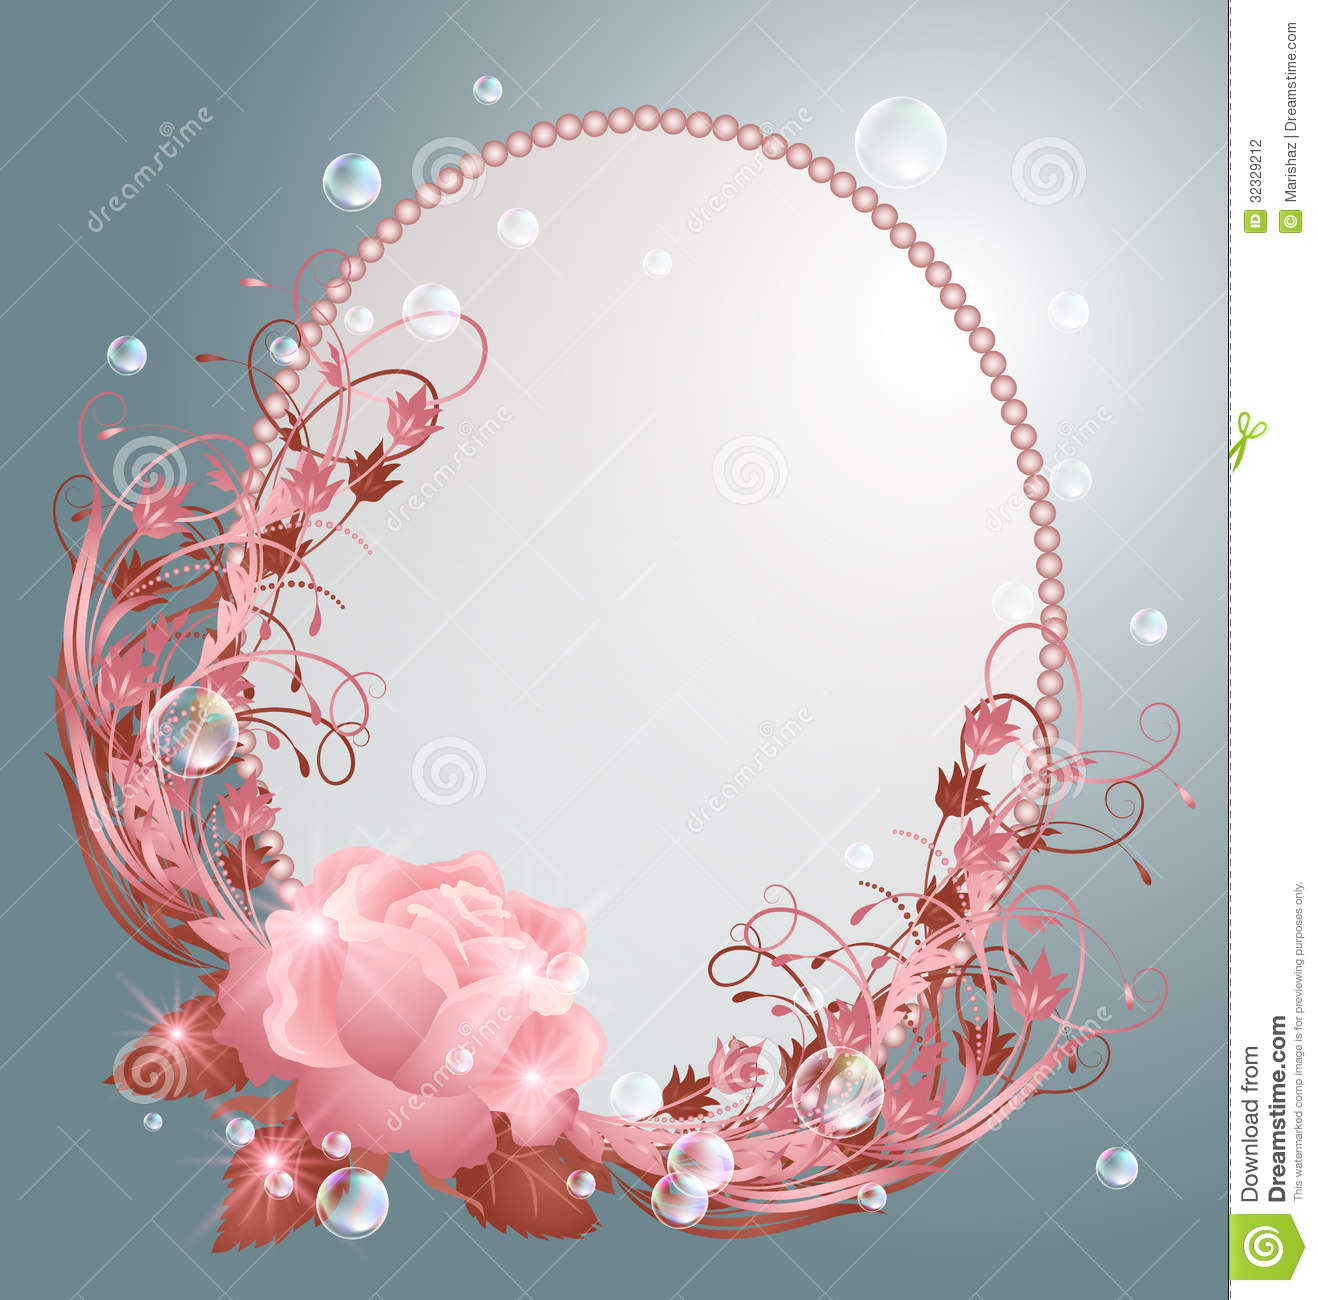 Round Frame And Rose Stock Vector Illustration Of Bubbles